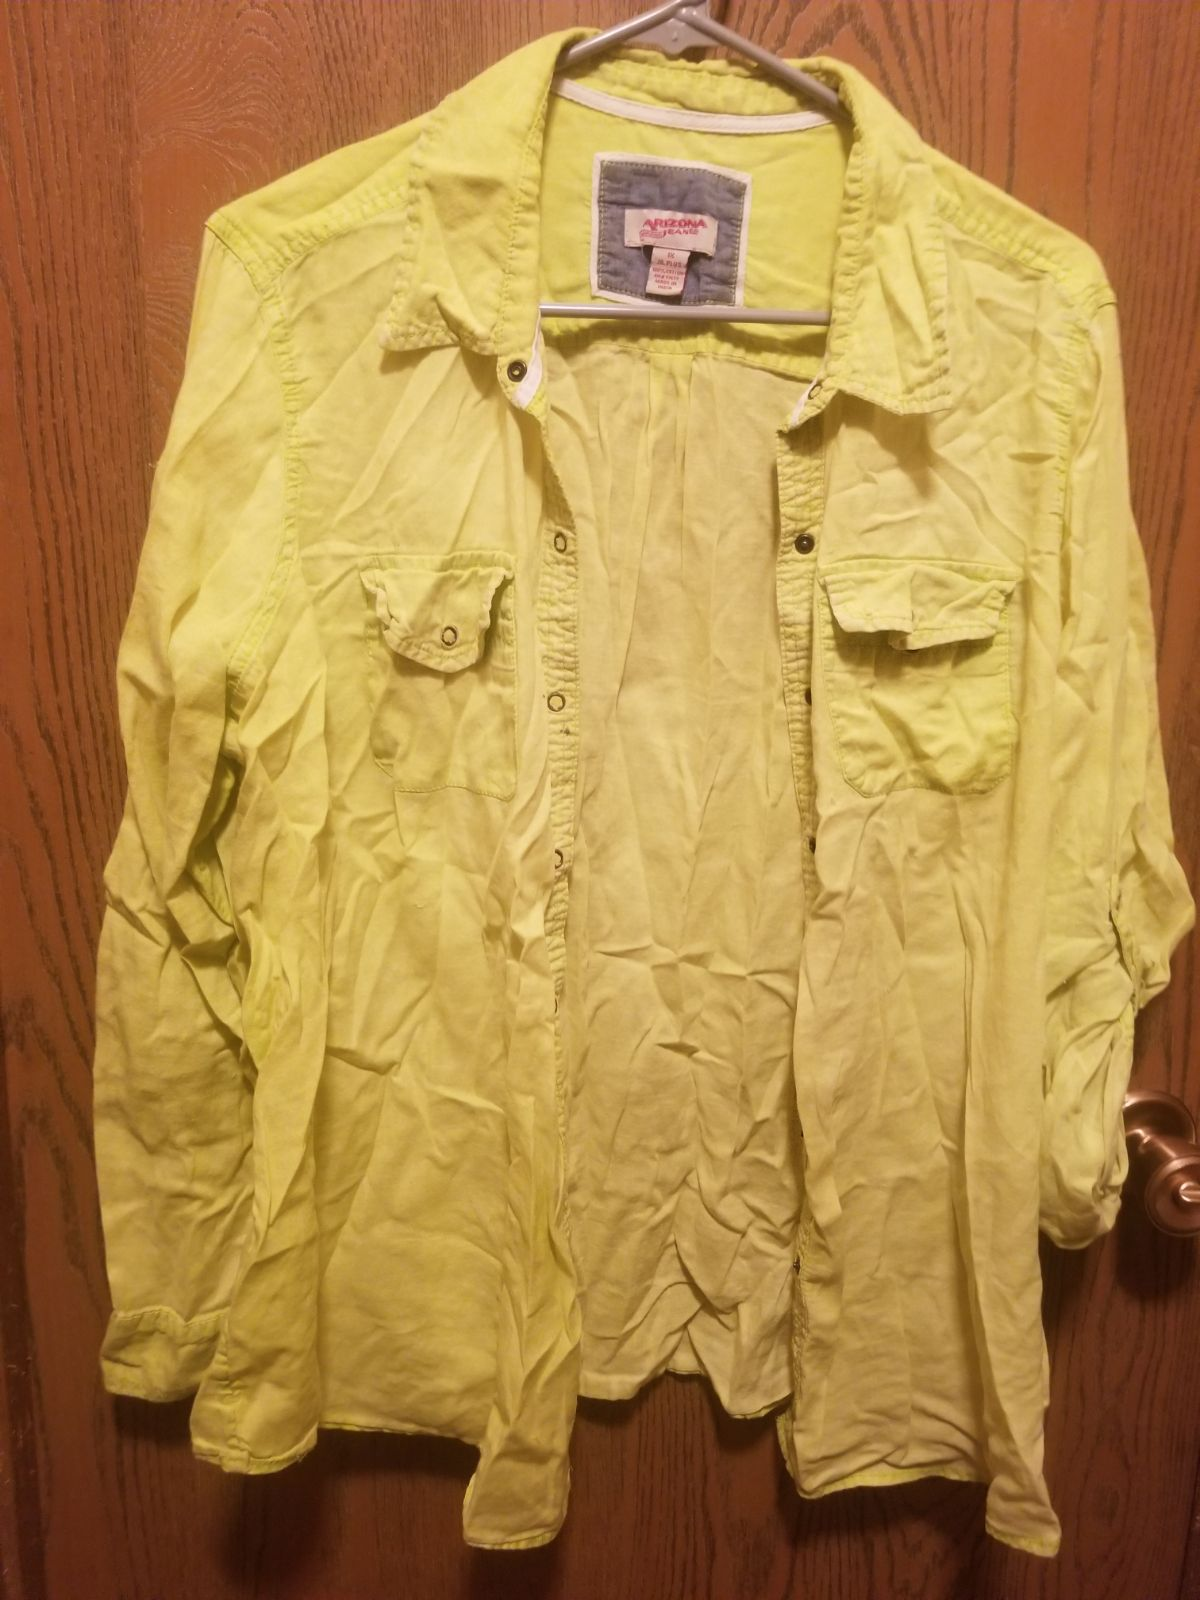 Lime green neon button down